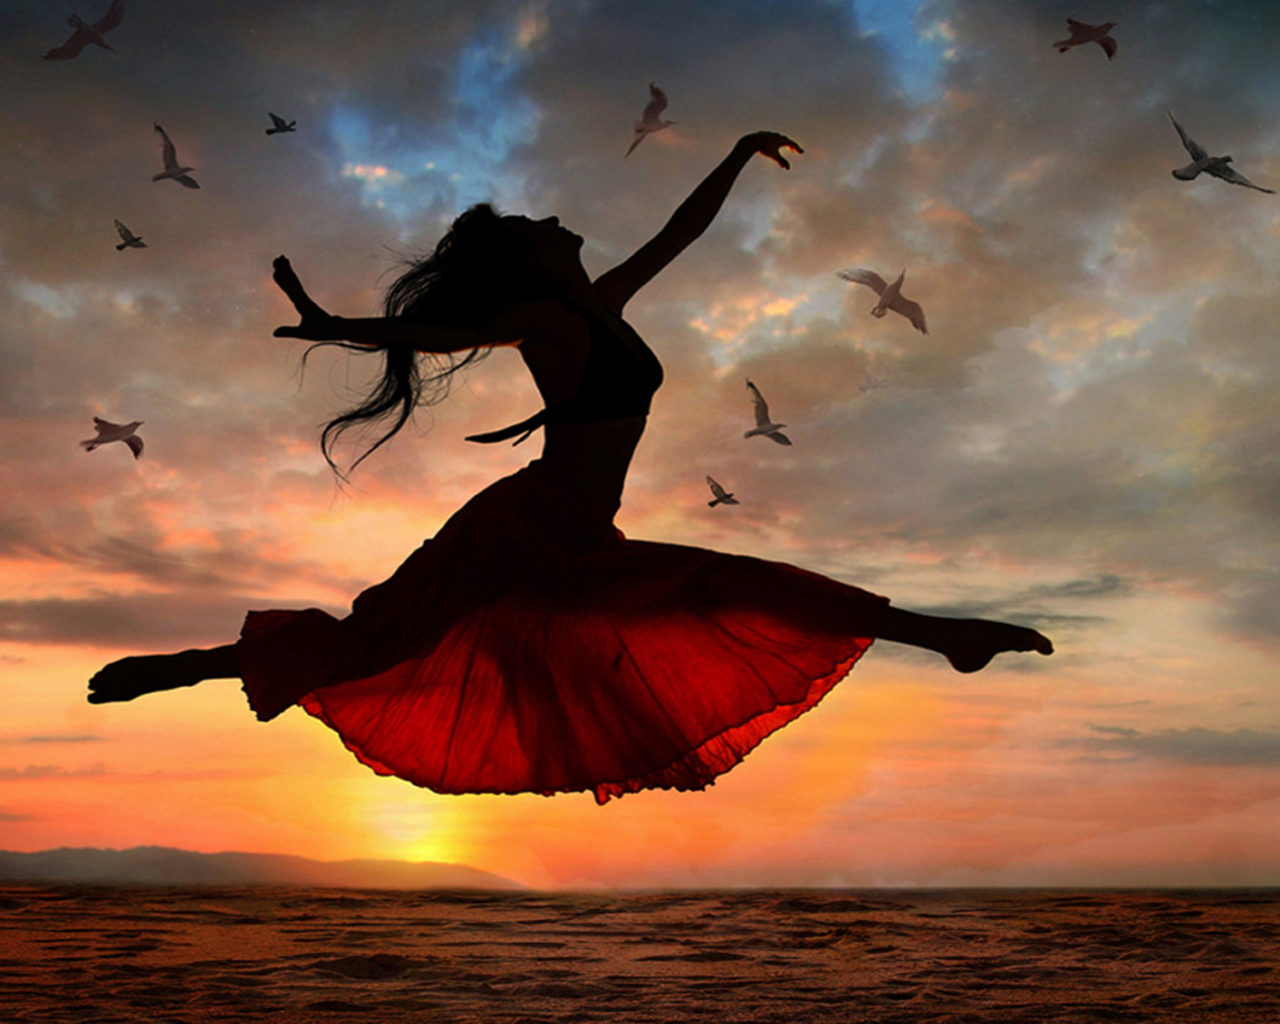 Trippy Wallpapers Hd Iphone Sea Gulls Sunset Dancing Of The Girl Hd Wallpaper